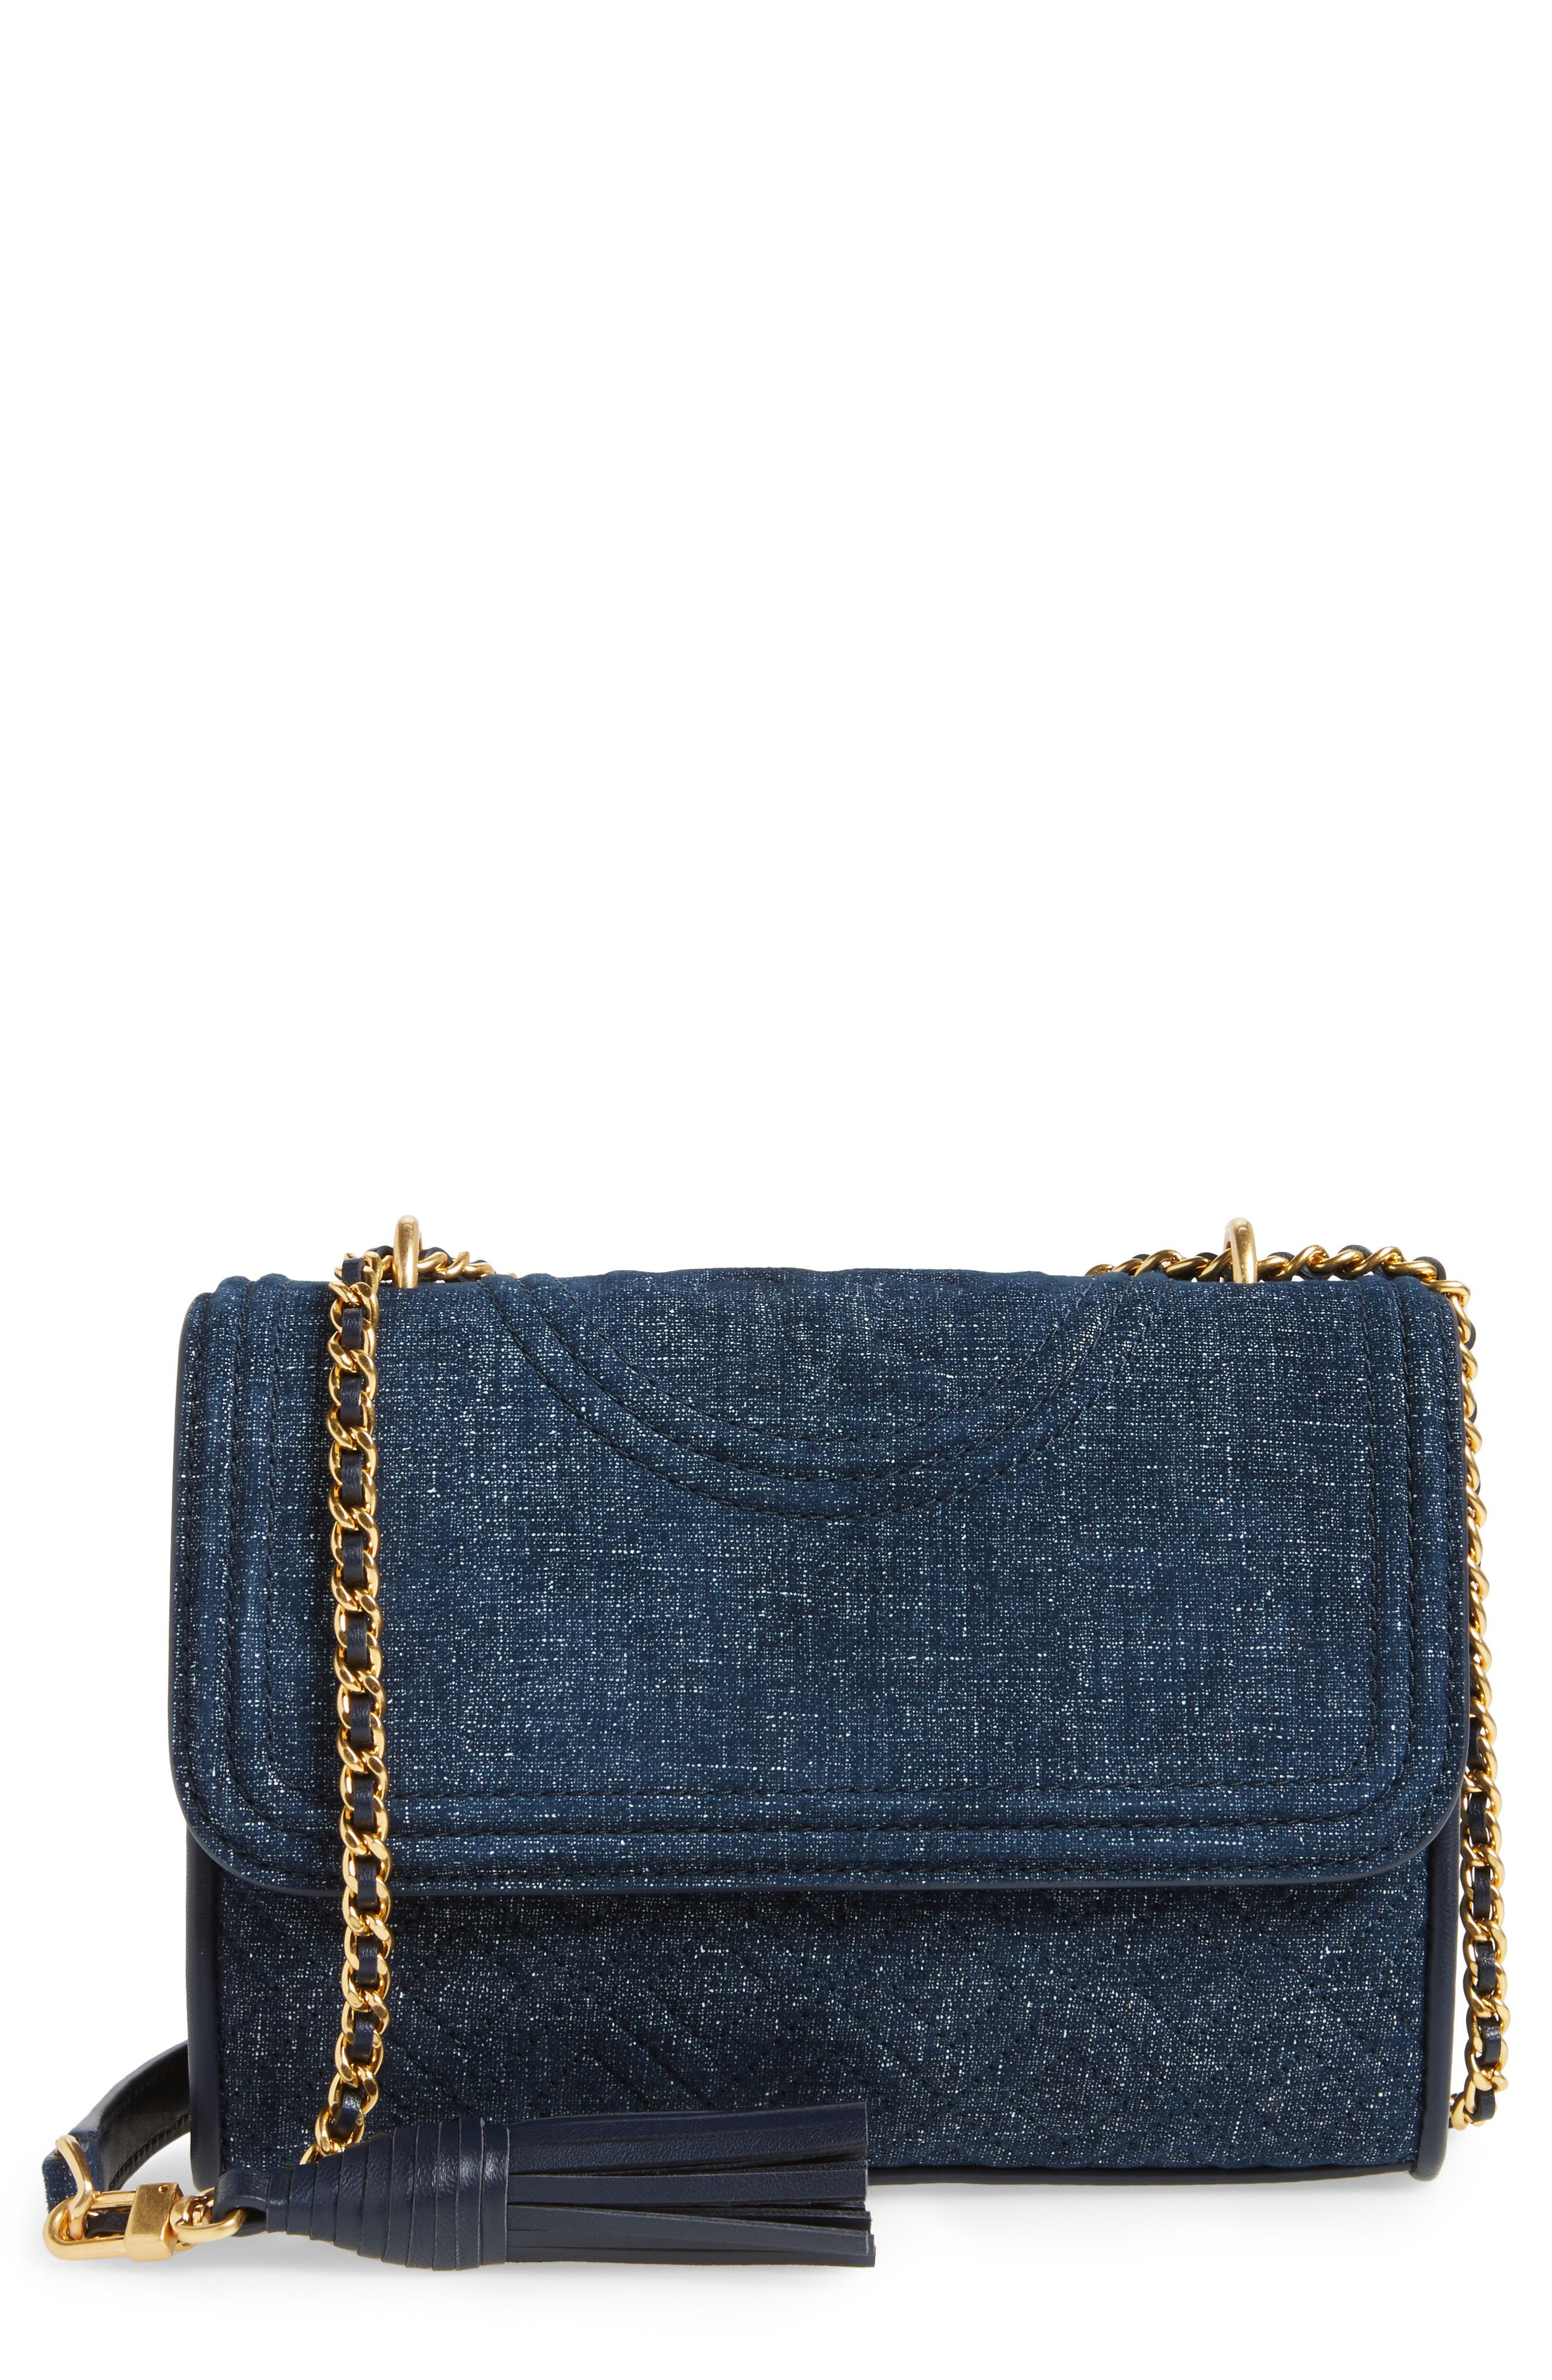 Small Fleming Logo Quilted Denim Shoulder/Crossbody Bag,                         Main,                         color, Tory Navy